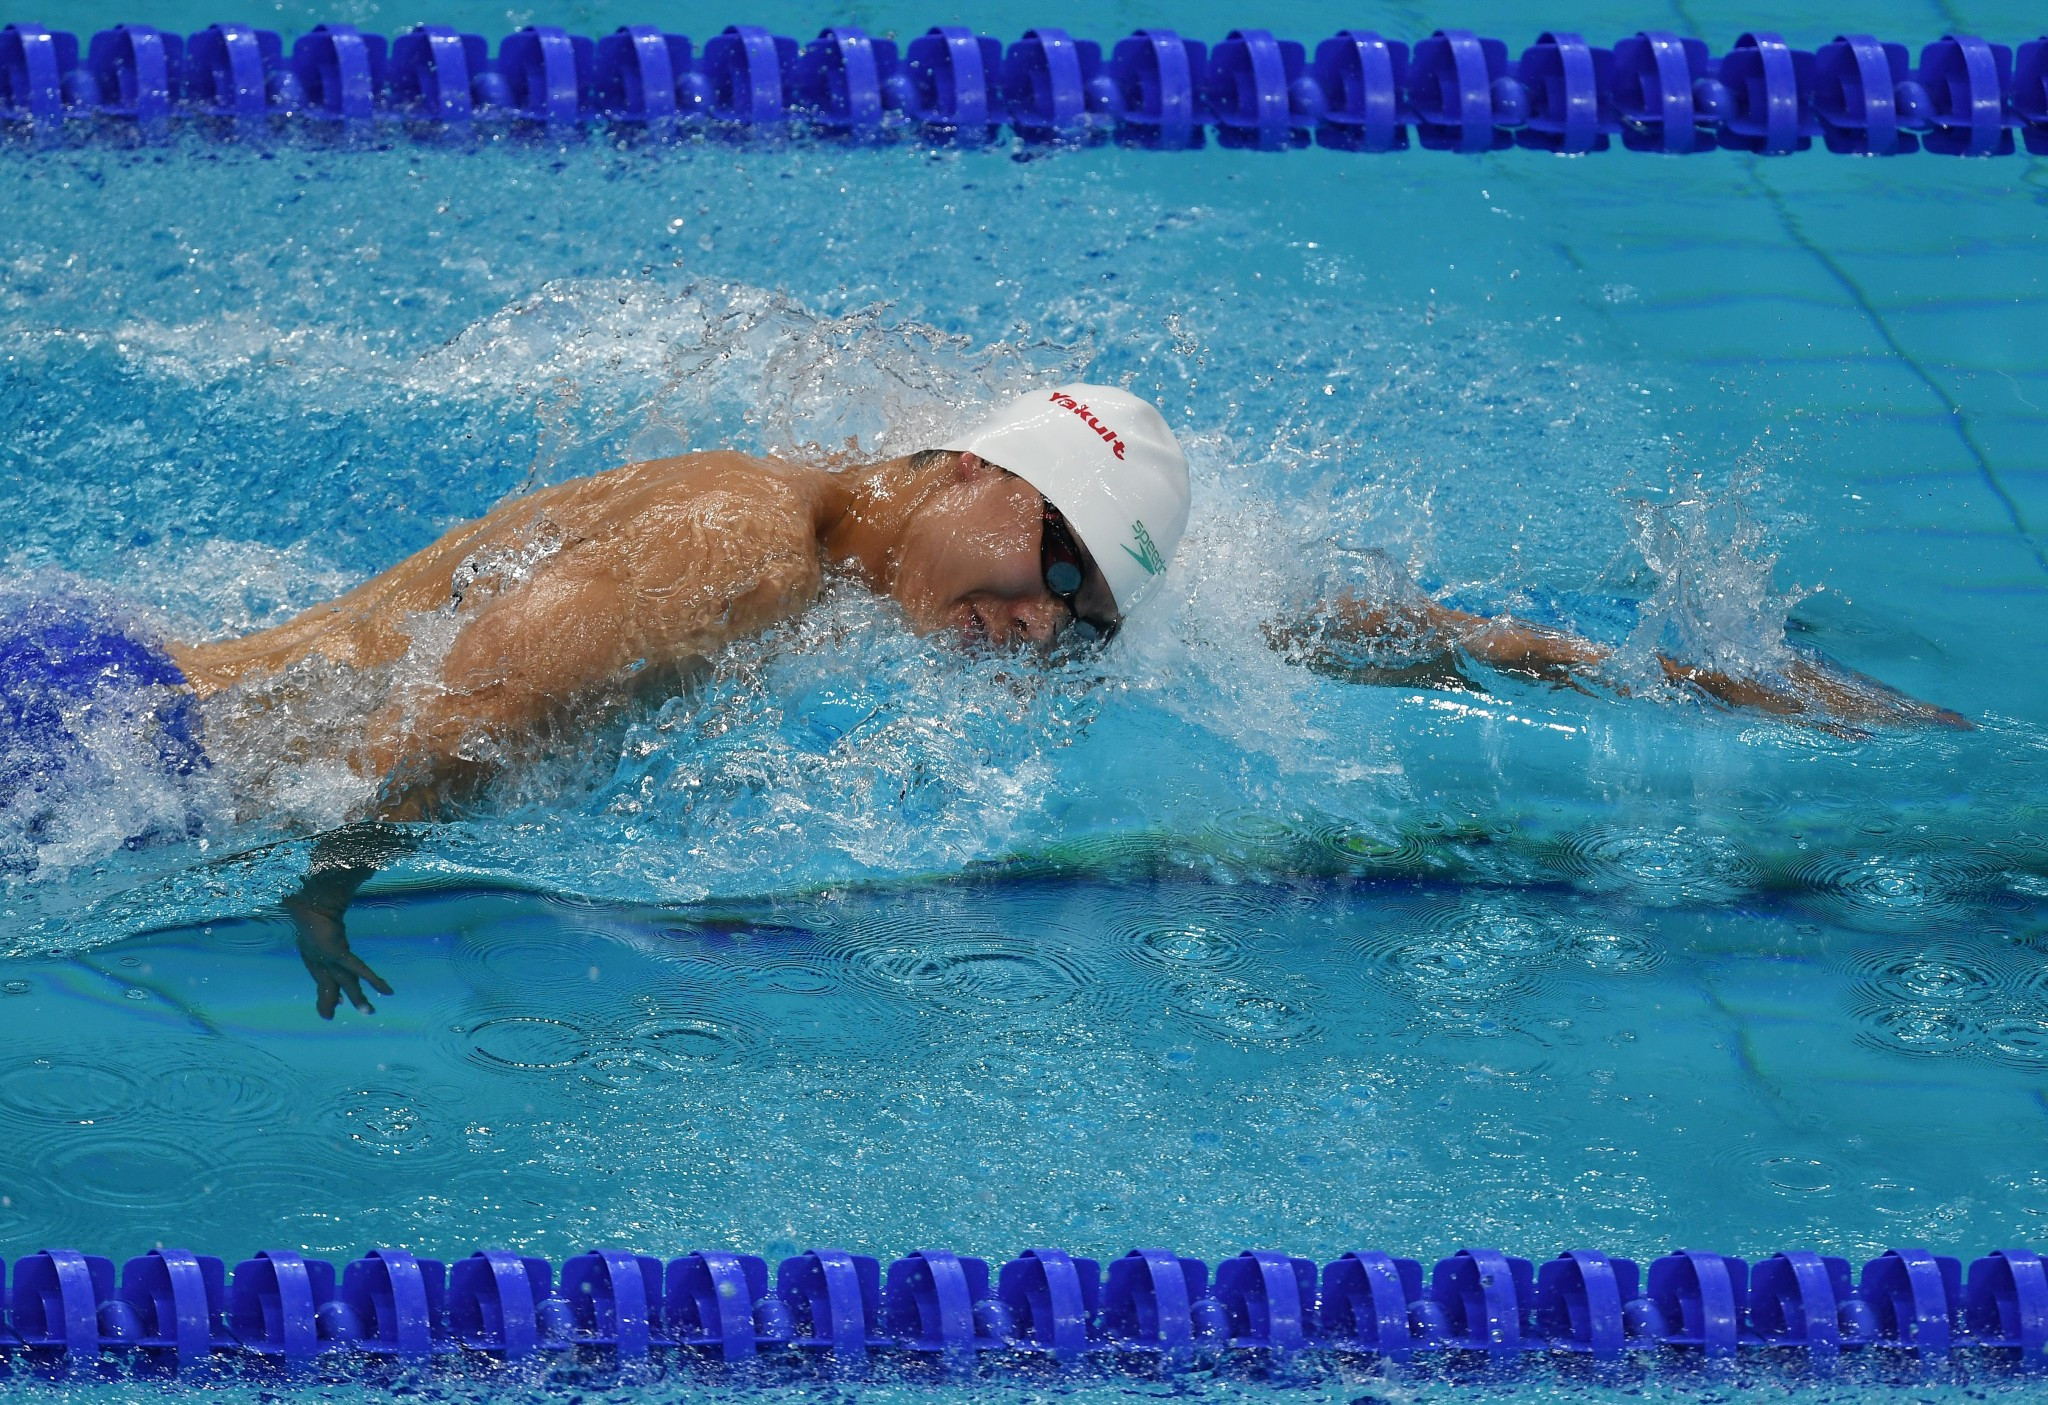 Russia's Vladimir Morozov won three gold medals today ©Getty Images